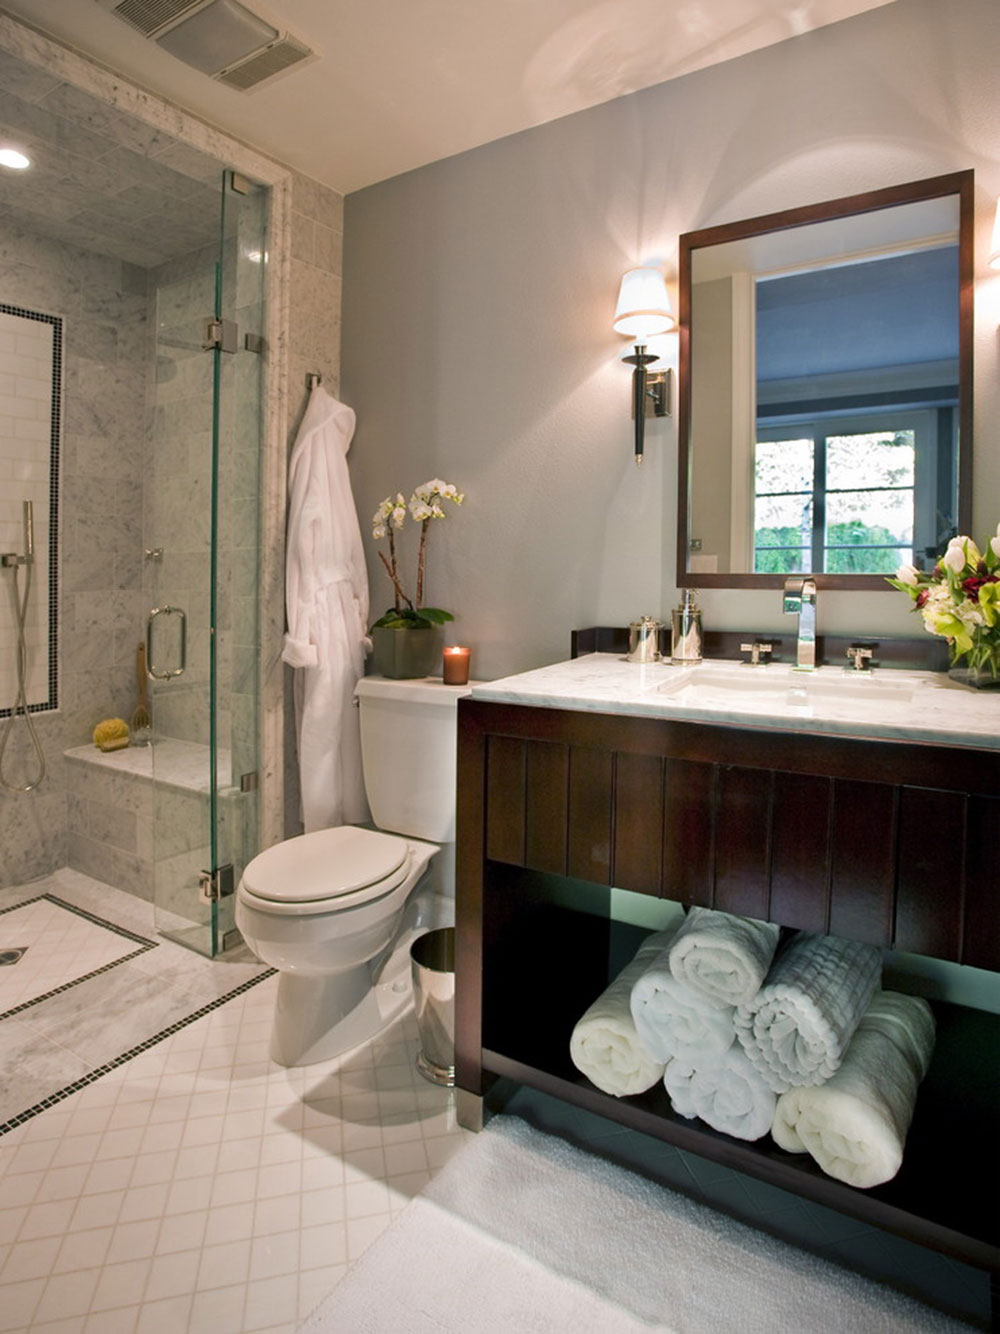 Modern Bathroom Ideas To Impress Your Guests1 Powder Room Ideas Powder Room Ideas